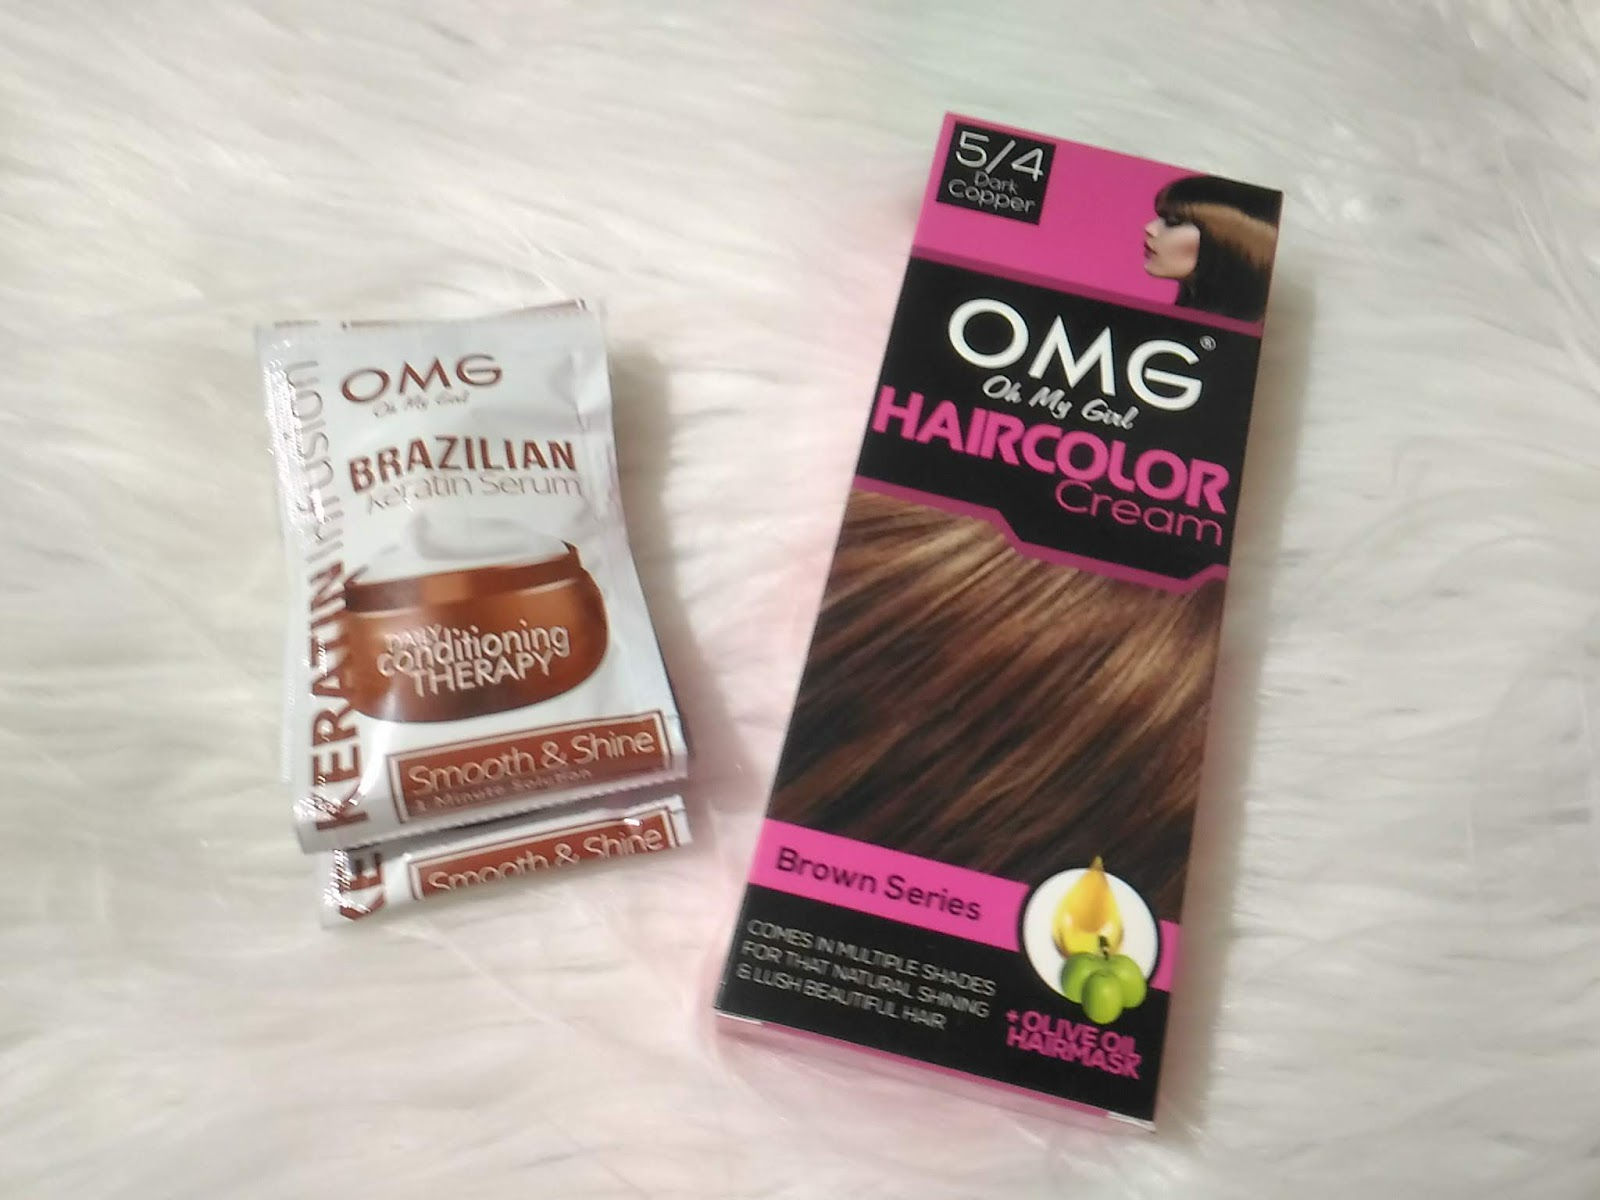 f91a25e56d25fc OMG is a nail polish brand from the Philippines. Now, OMG offers more salon  products such as these hair color cream and the Brazilian keratin serum.